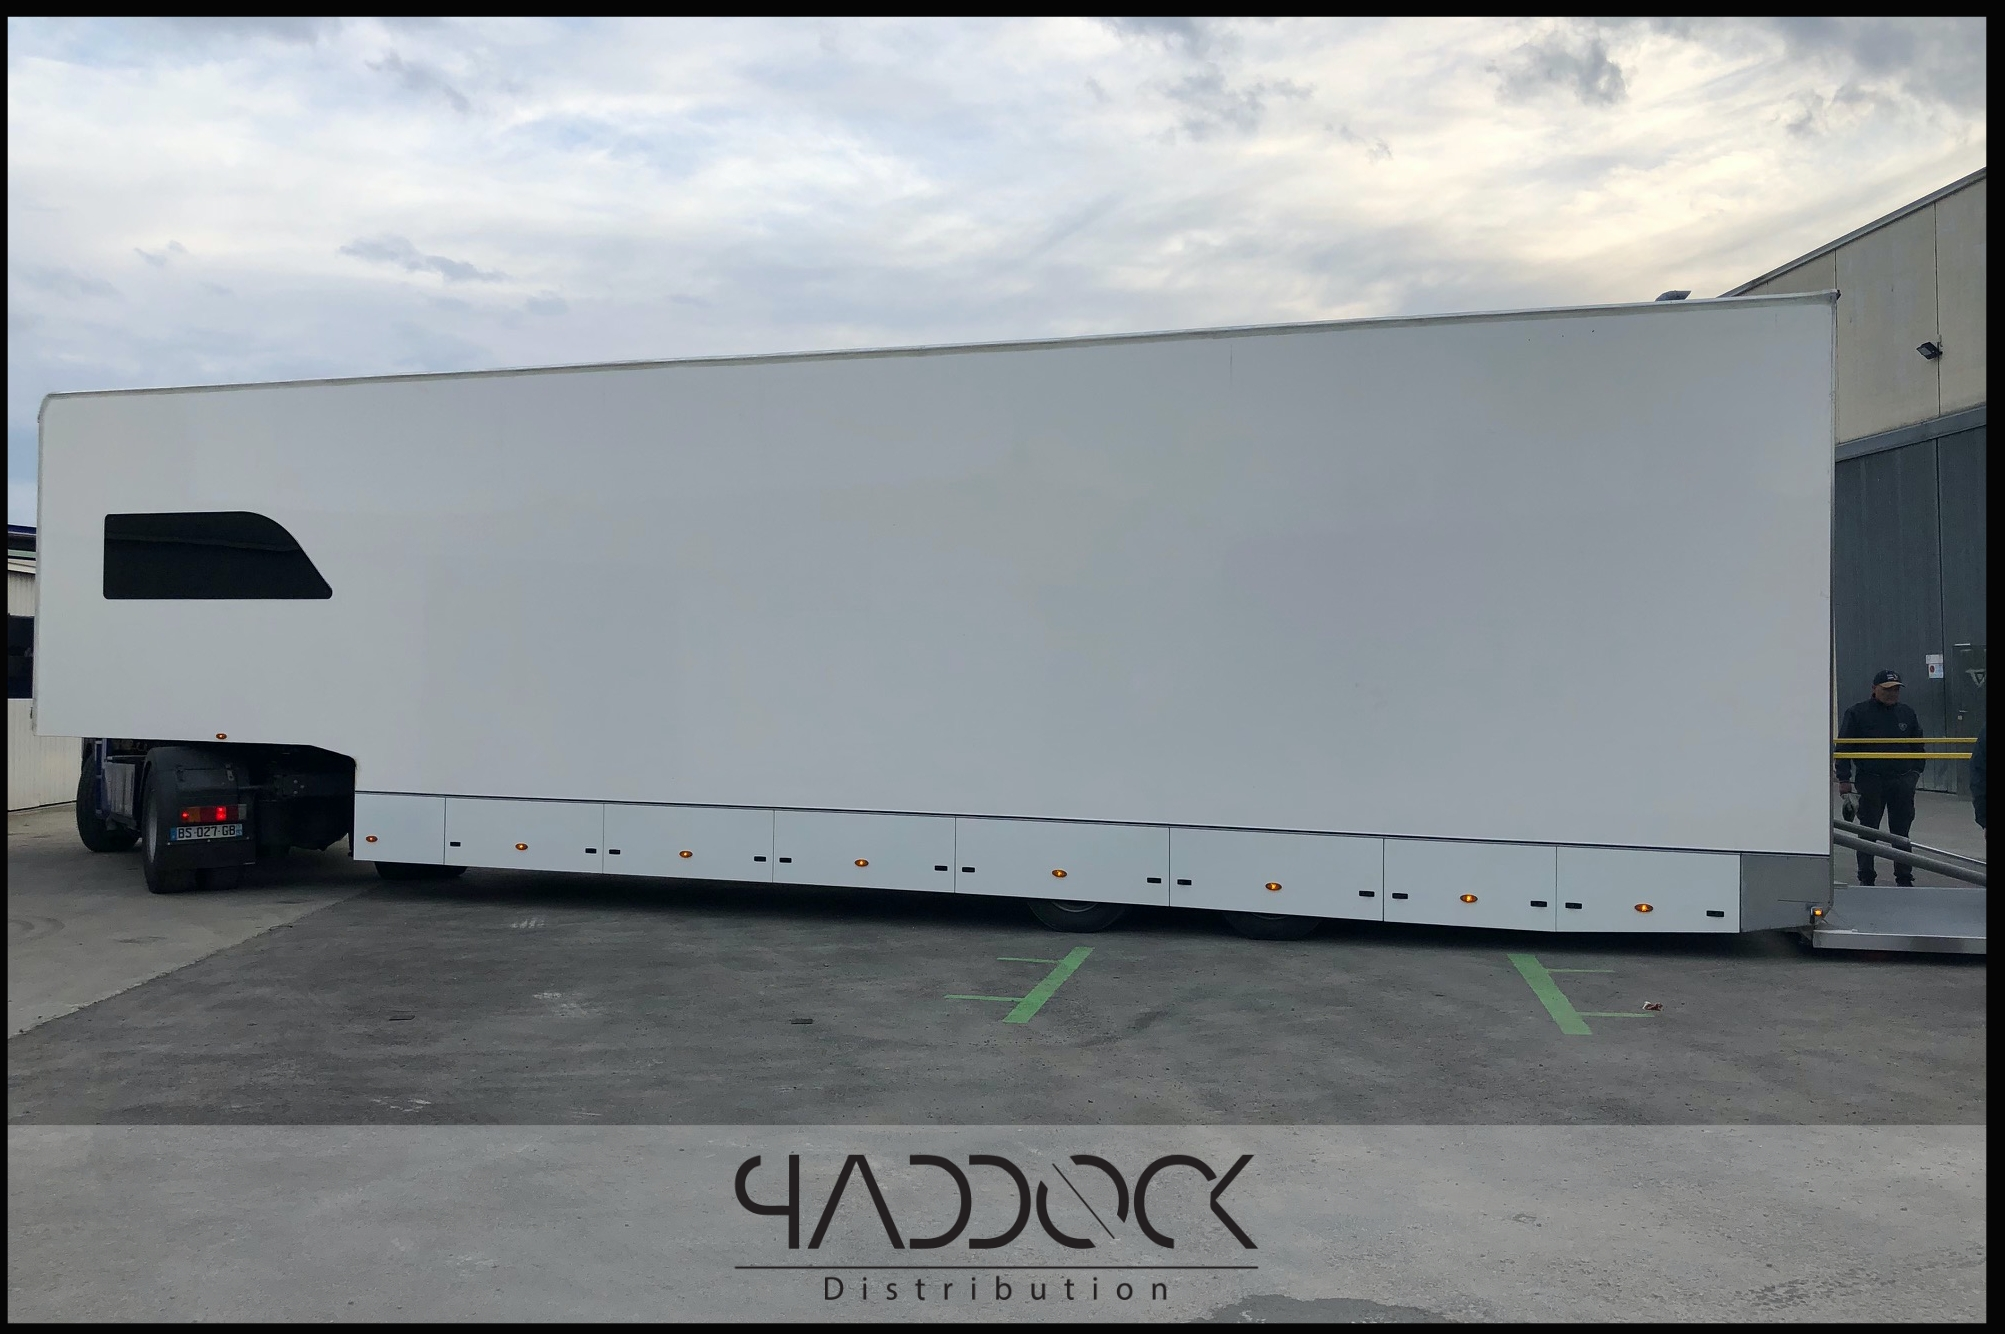 Asta Car Trailer 02 2018 By Paddock Distribution Racecars44